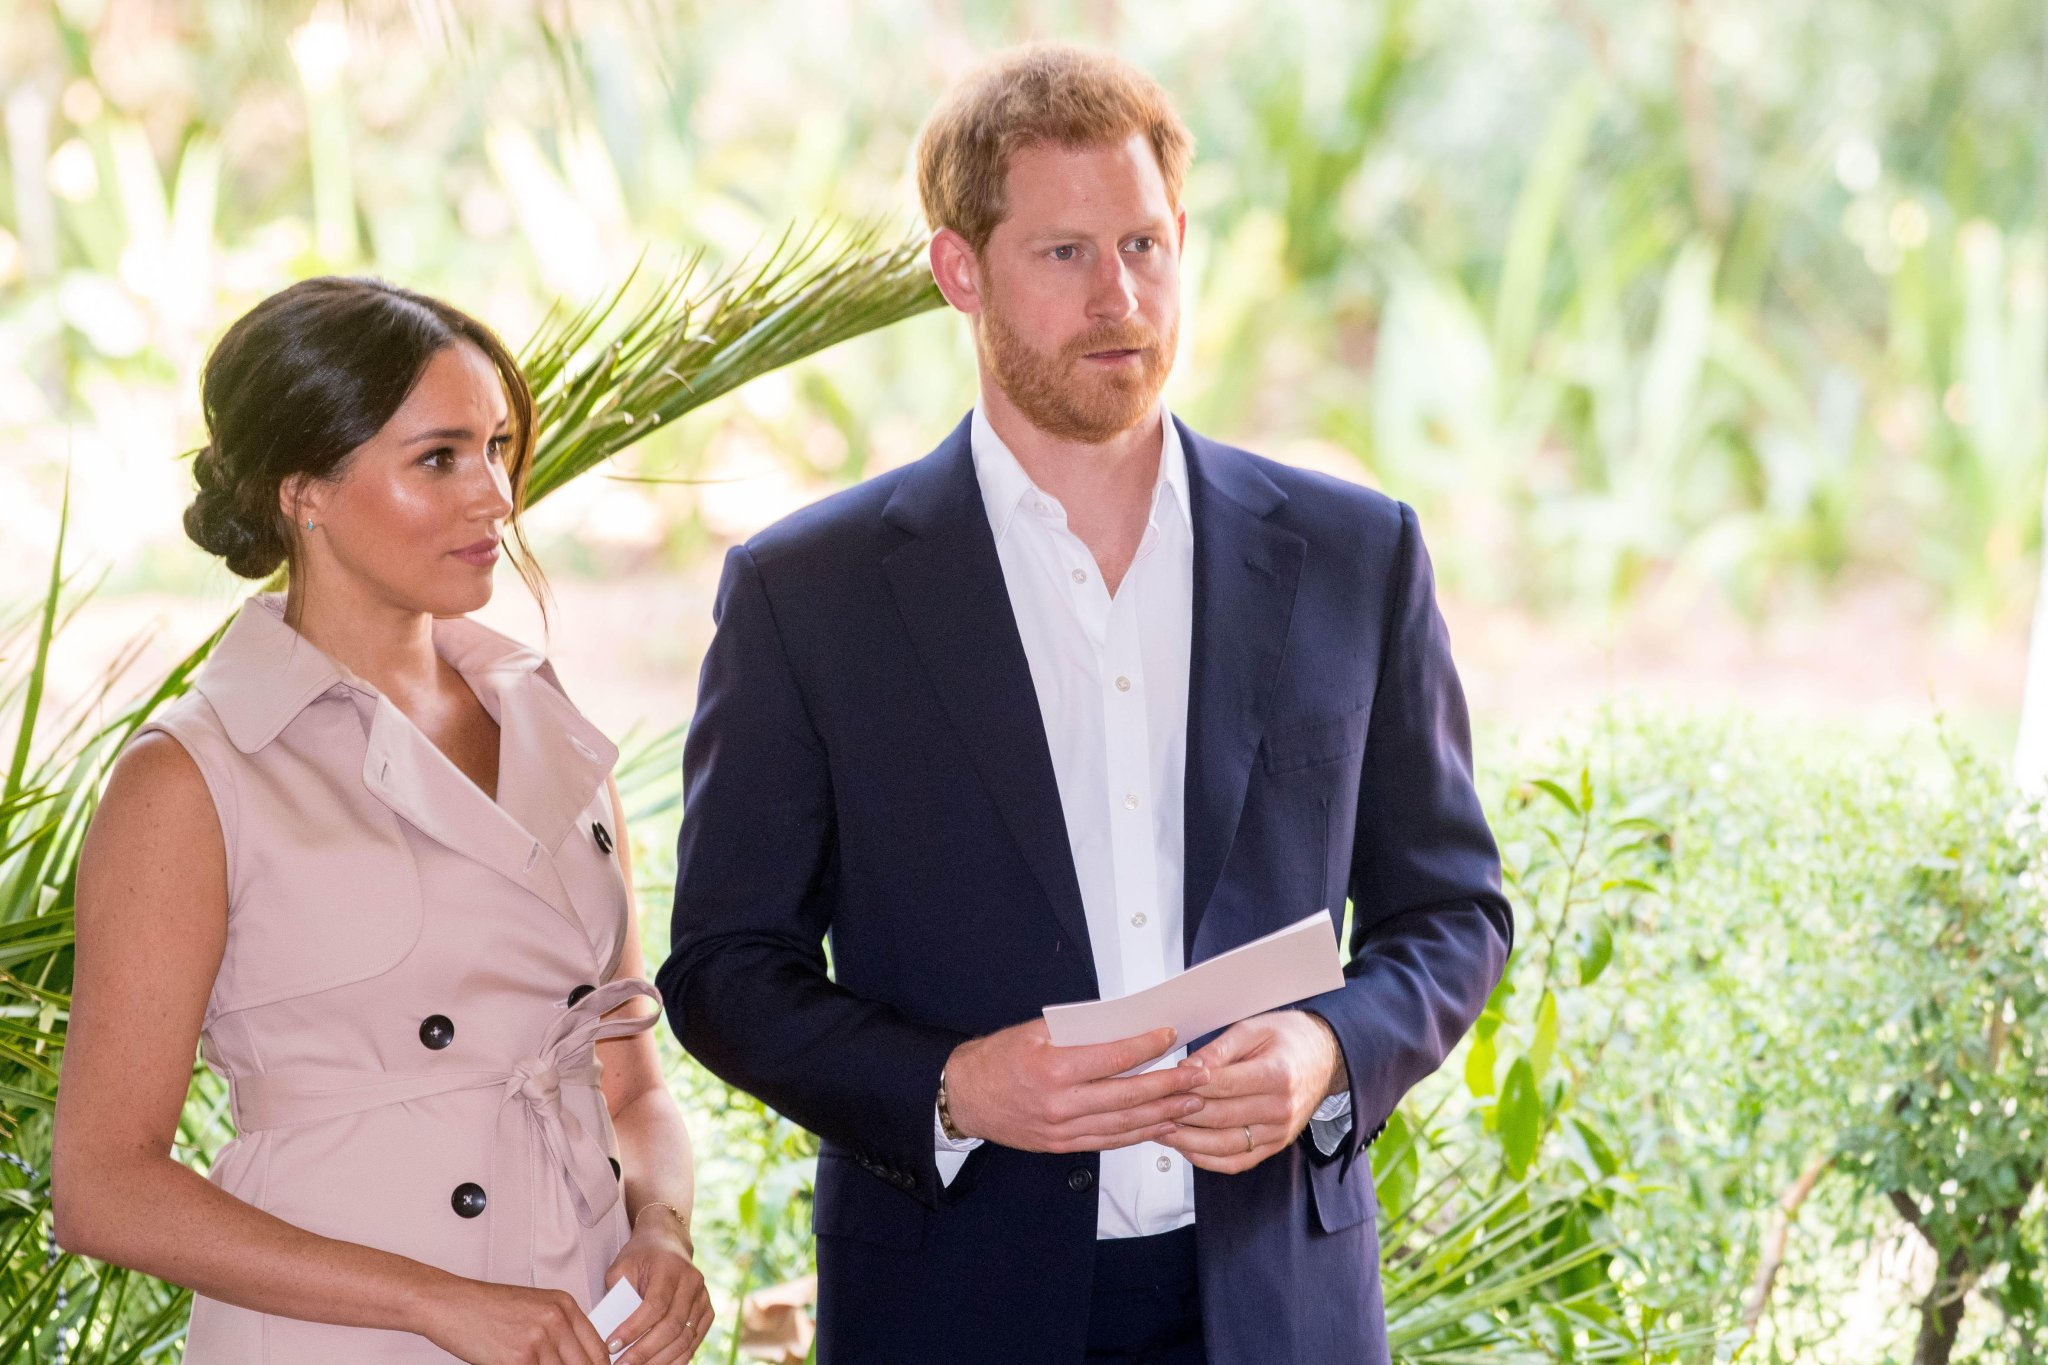 15 Times the Royals Opened Up About Their Own Struggles